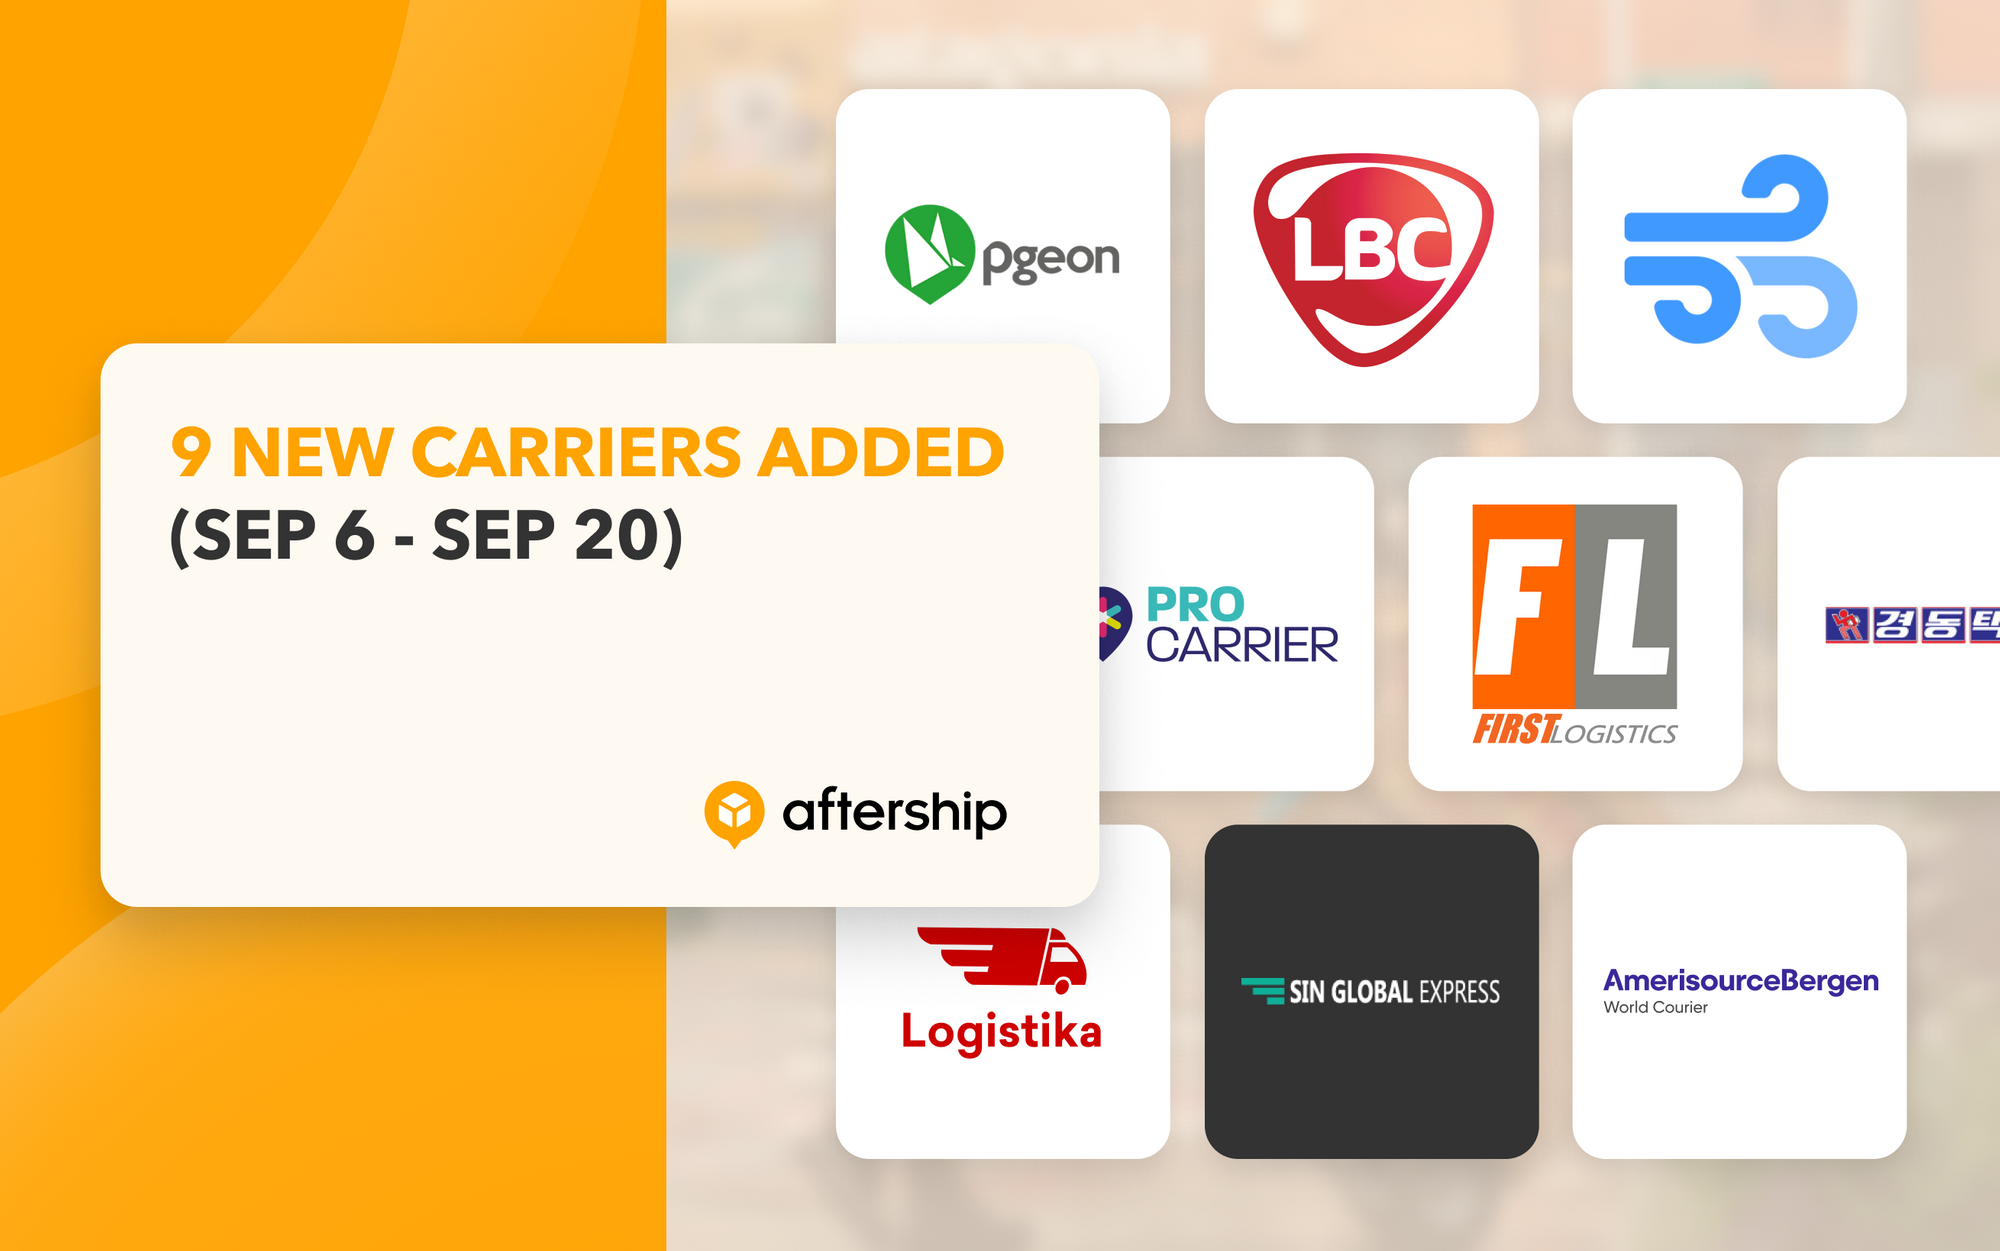 AfterShip adds 9 new couriers in the last two weeks (6th September 2021 to 20th September 2021)